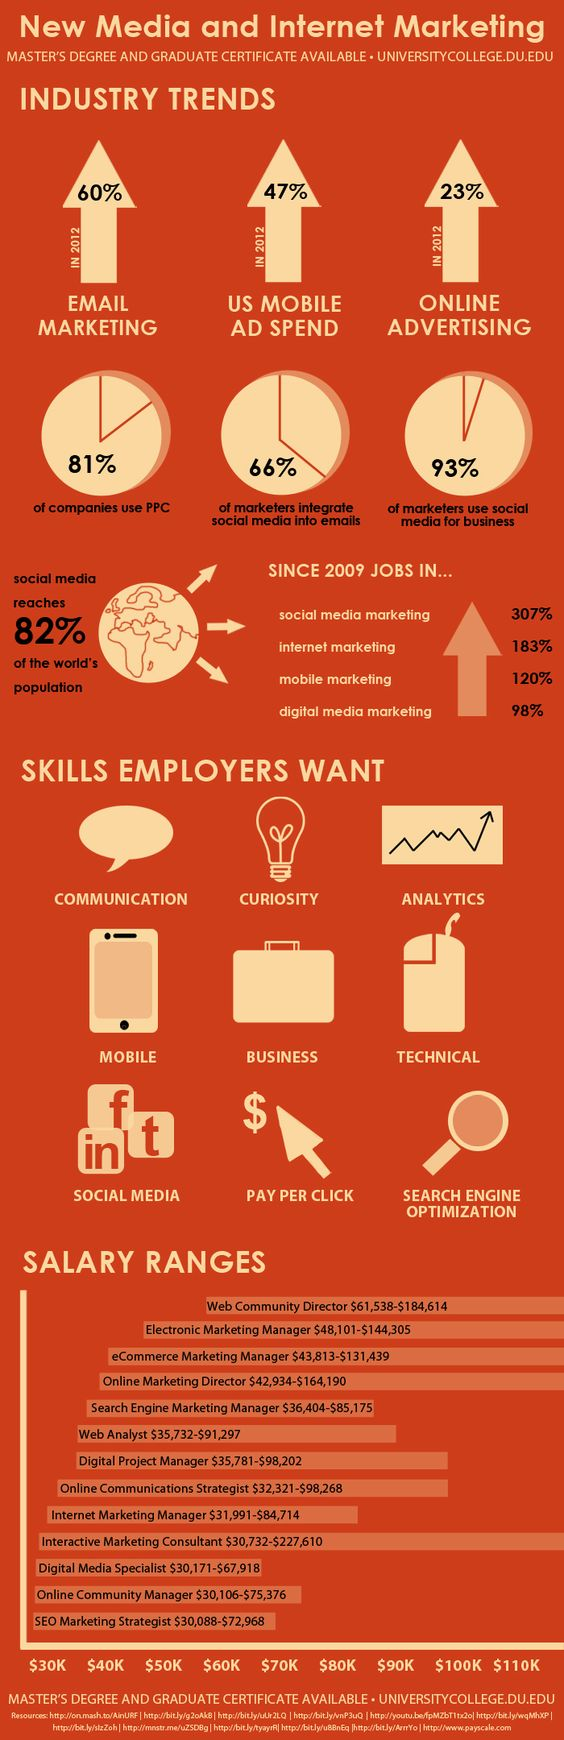 industry trends skills employers want and salary ranges for new industry trends skills employers want and salary ranges for new media and internet marketing